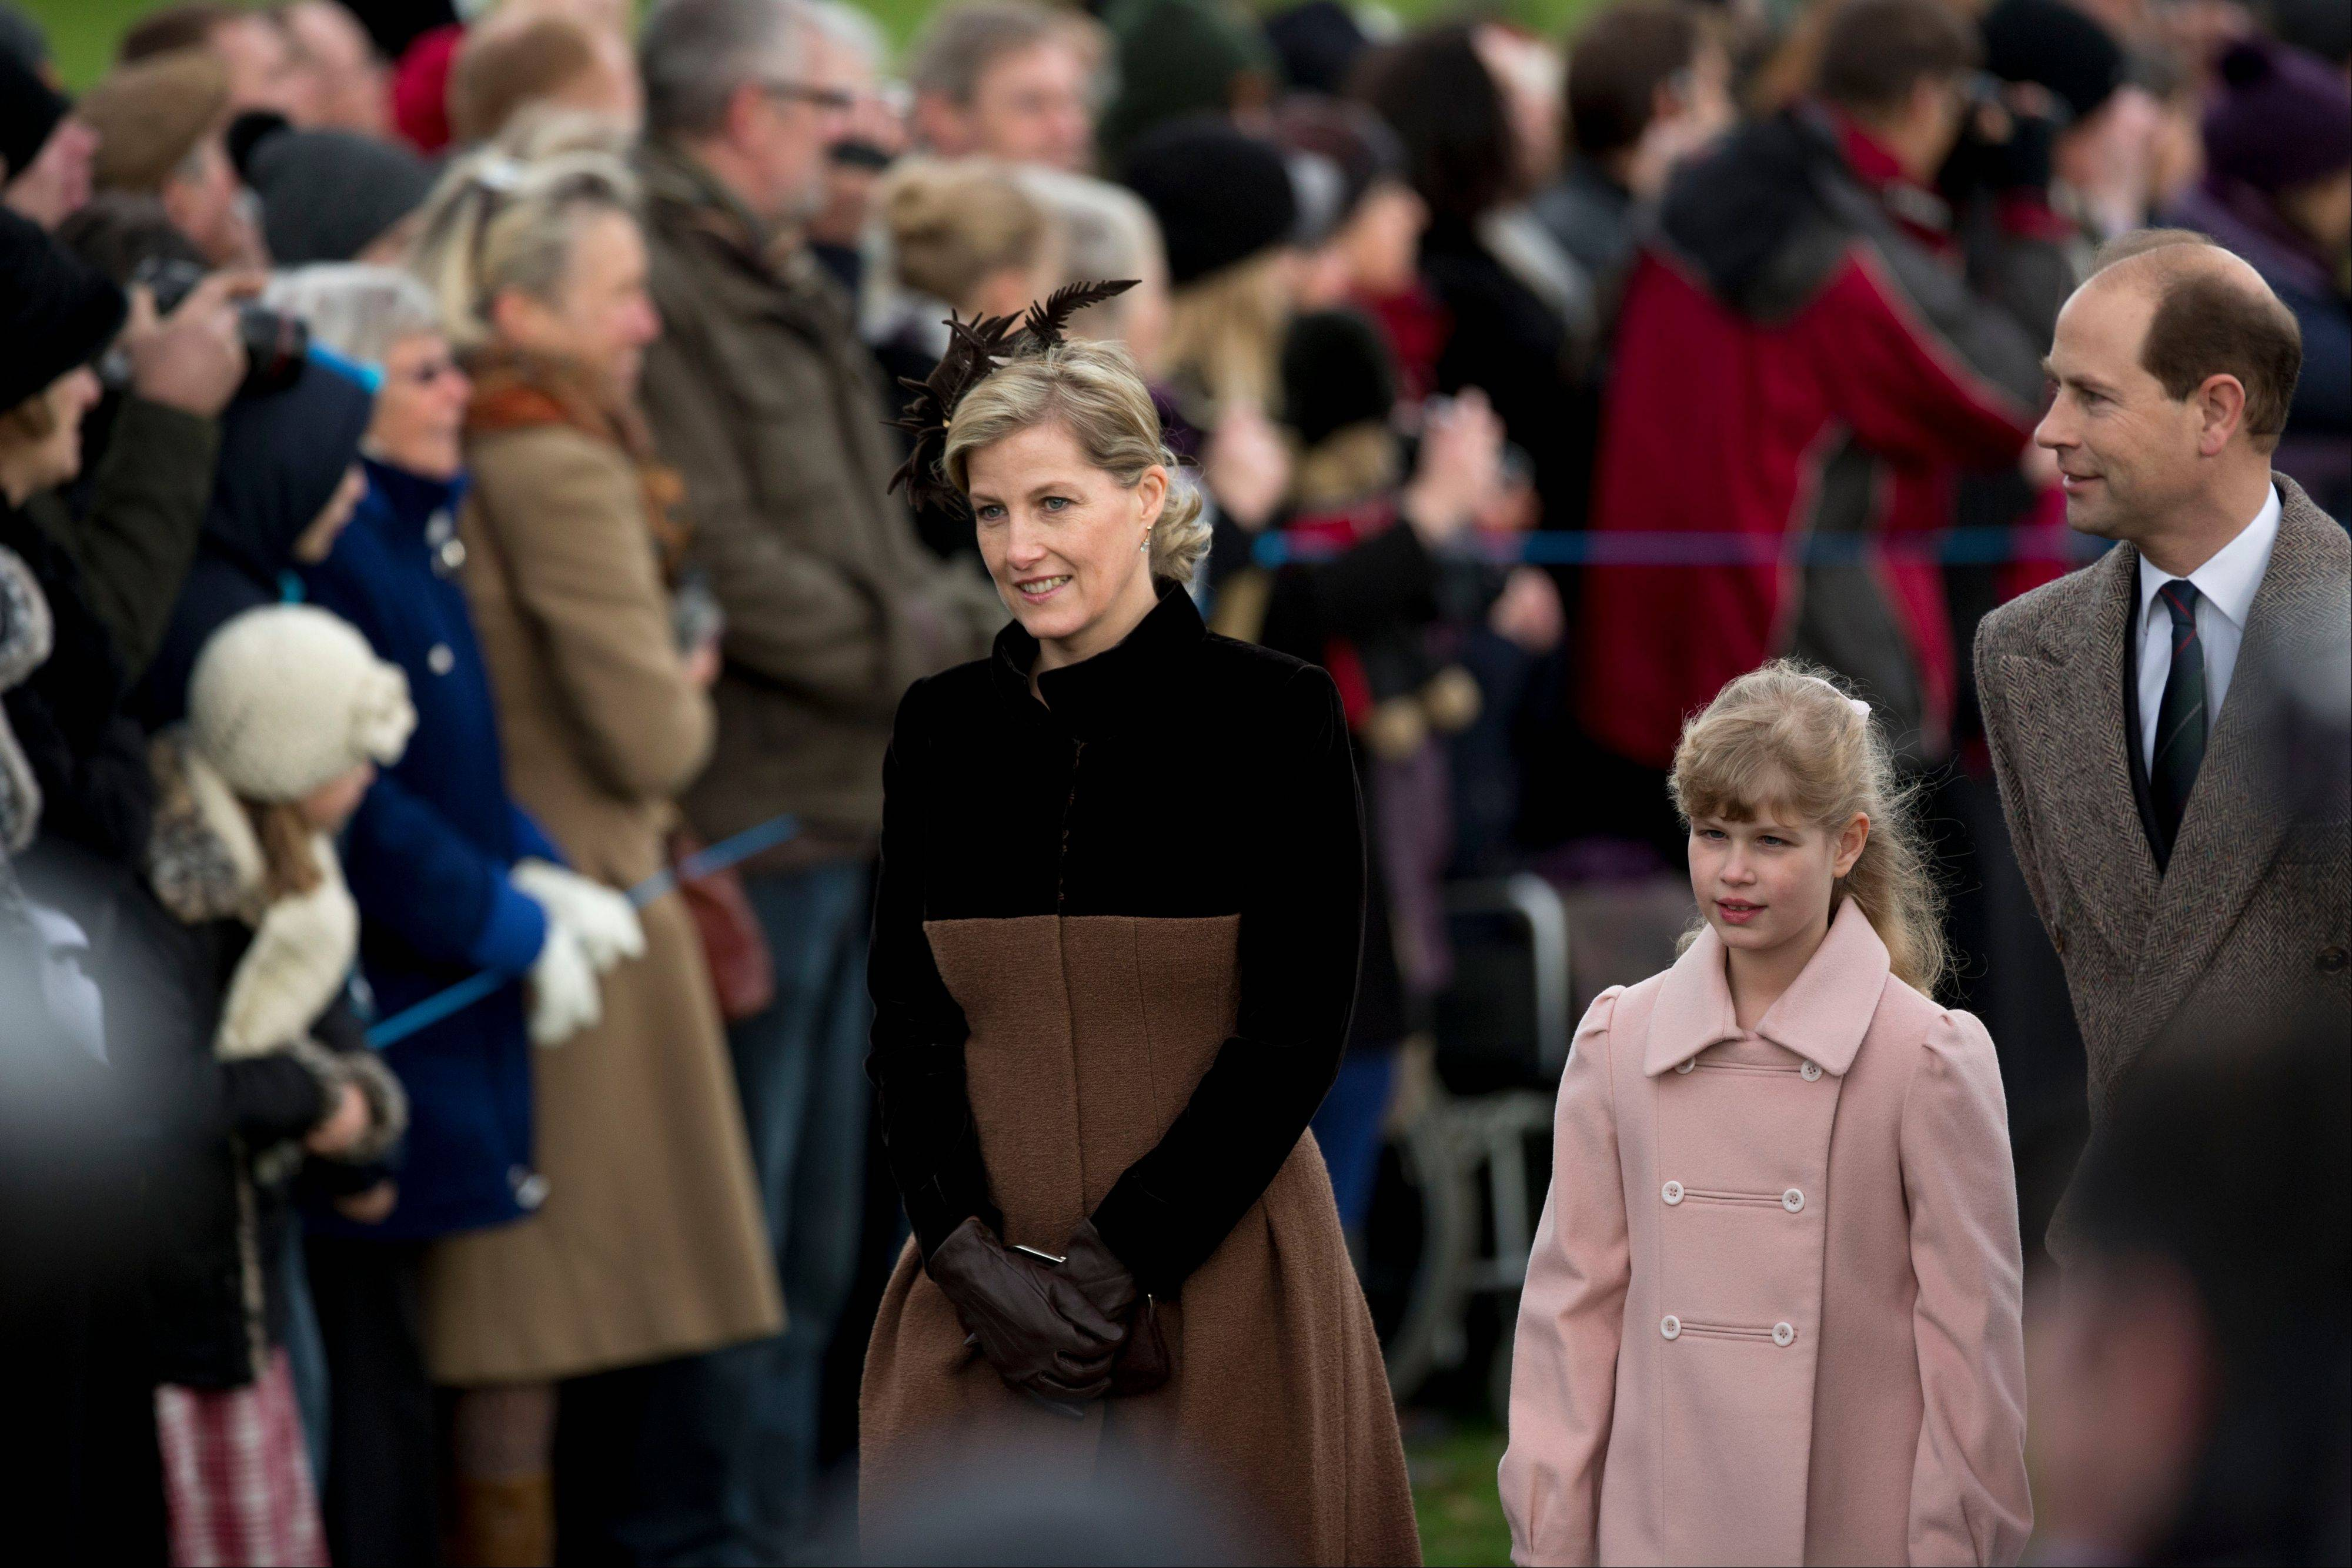 The son of Britain's Queen Elizabeth II, Prince Edward, his wife Sophie Countess of Wessex and their daughter Louise arrive for the British royal family's traditional Christmas Day church service in Sandringham, England, Tuesday, Dec. 25, 2012.